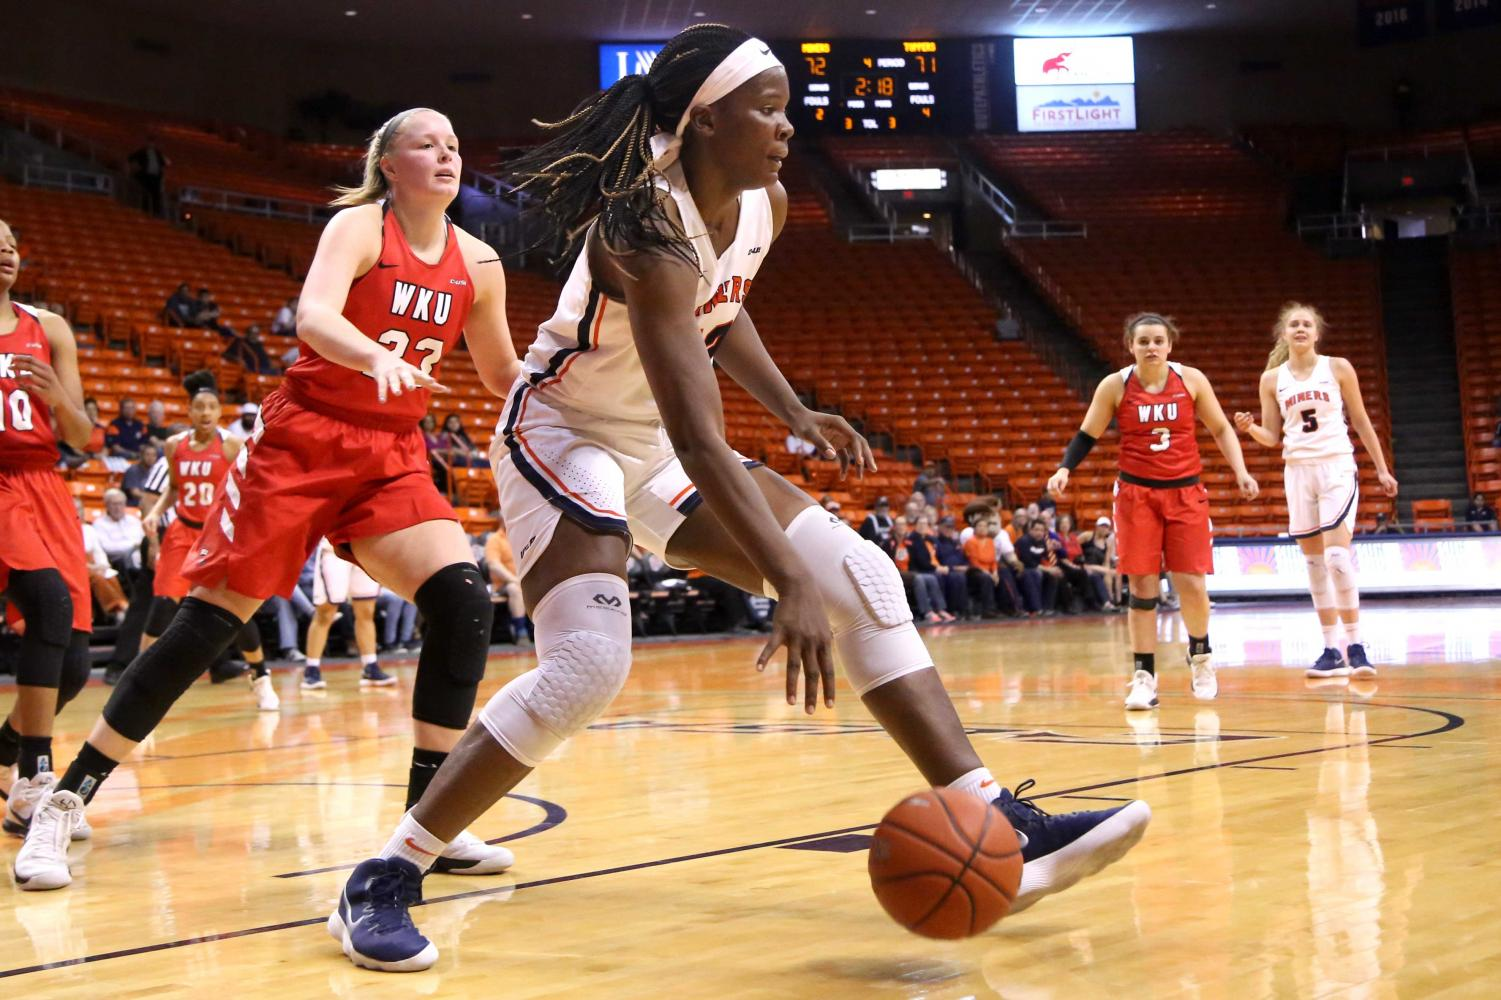 Senior+forward+Tamara+Seda+was+UTEP%27s+leading+scorer+with+21+points+on+her+final+home+game%2C+on+Saturday%2C+March+3+at+the+Don+Haskins+Center.